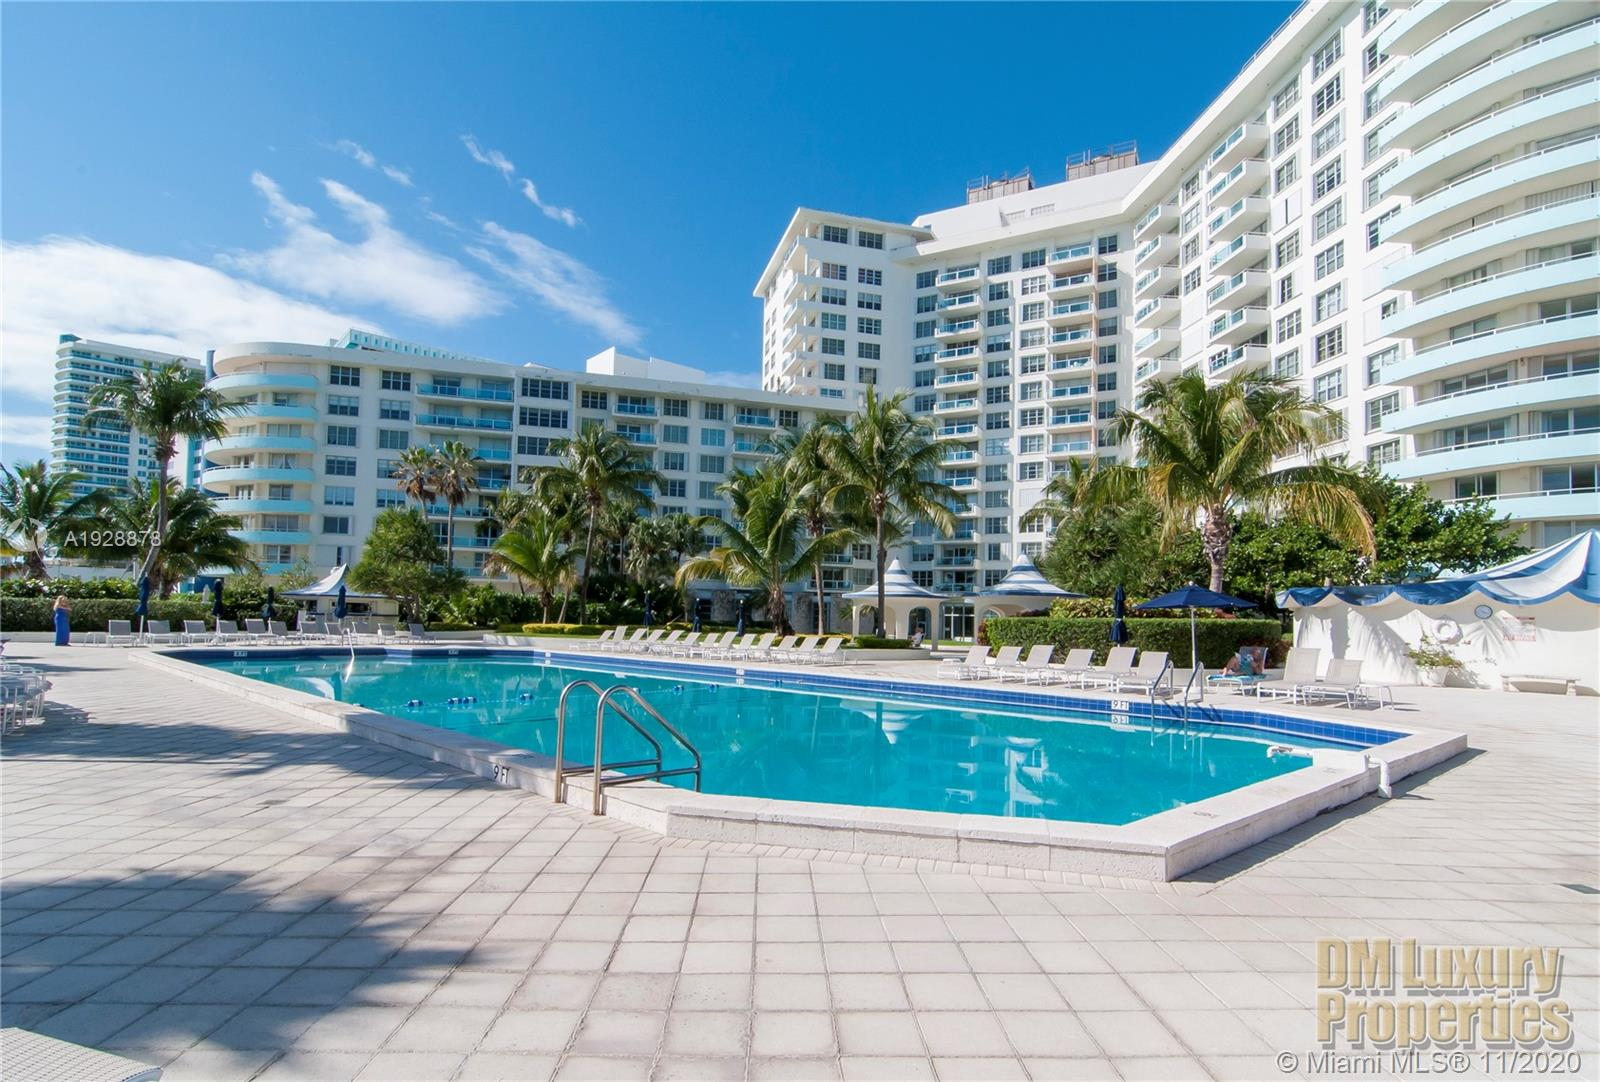 5161  COLLINS AV #1516 For Sale A1928878, FL